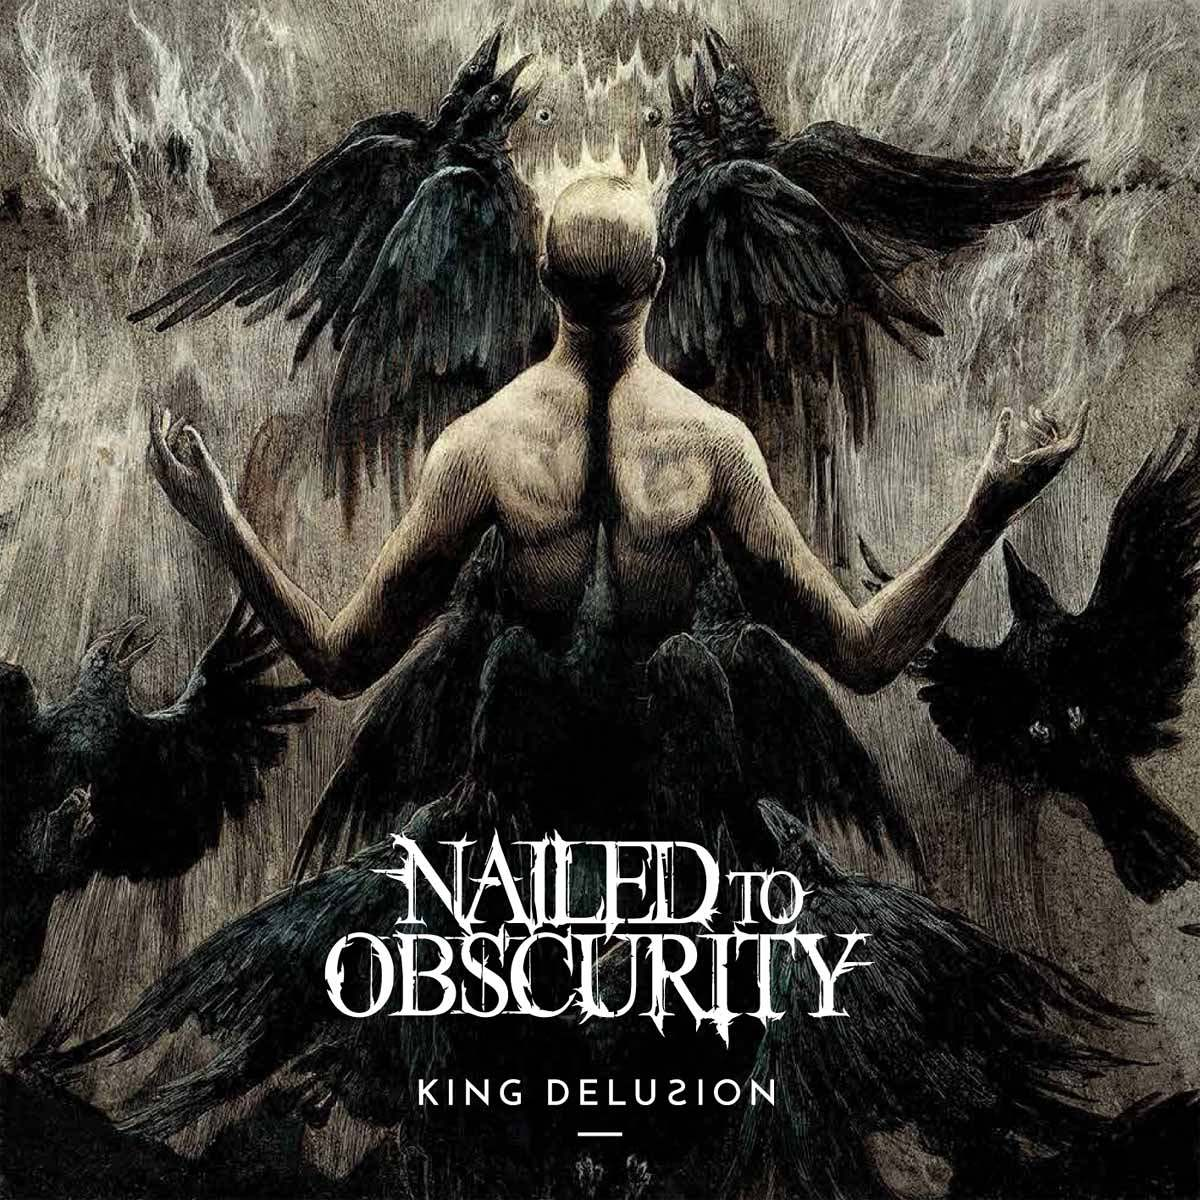 Nailed to Obscurity: King Delusion (2017) Book Cover